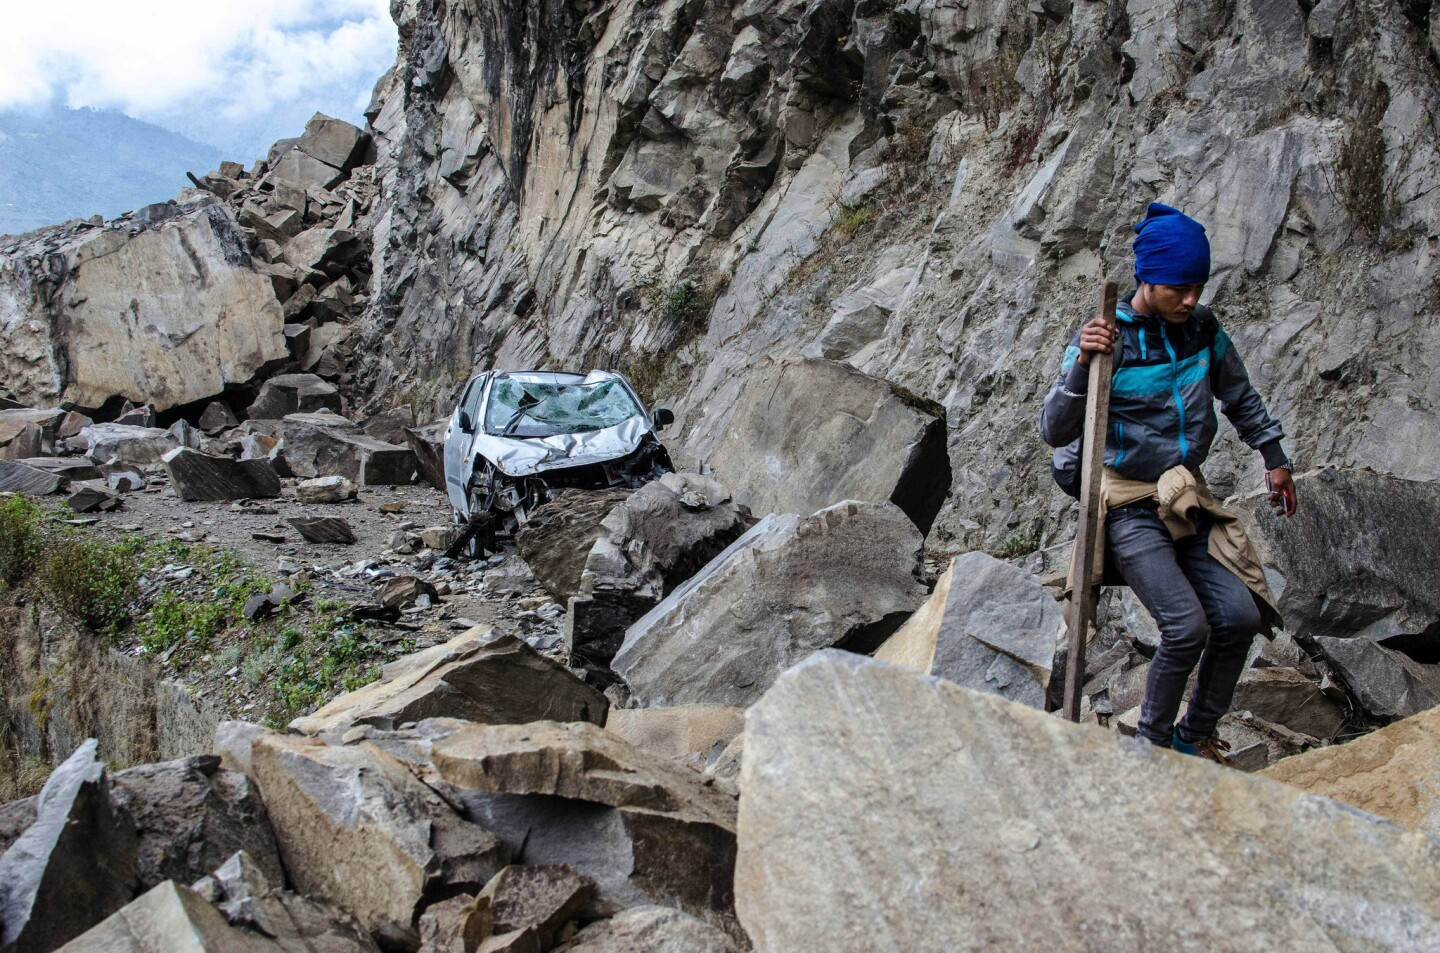 A Nepalese man walks over fallen rocks and past a crushed car on the way to a village in Langtang National Park.